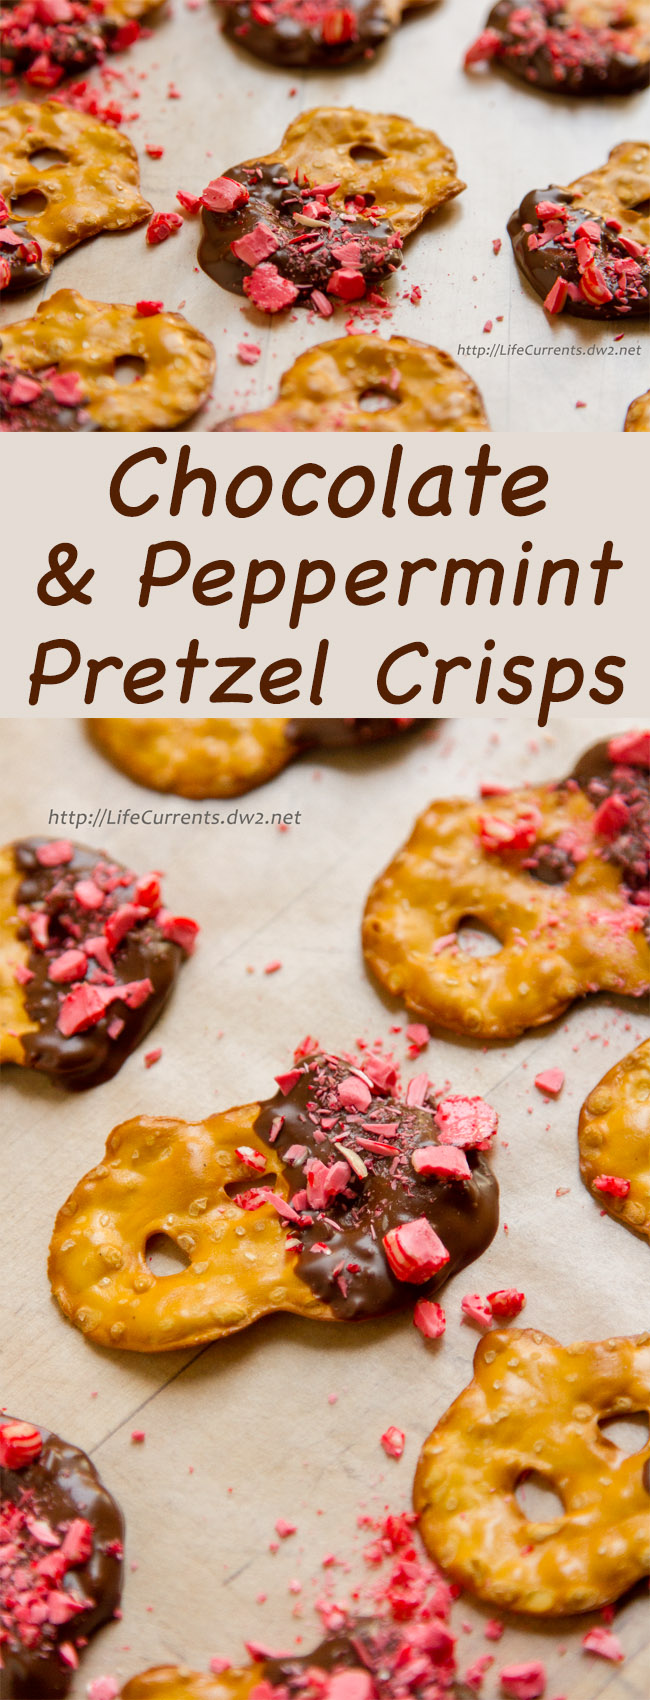 Chocolate and Peppermint Covered Pretzel Crisps